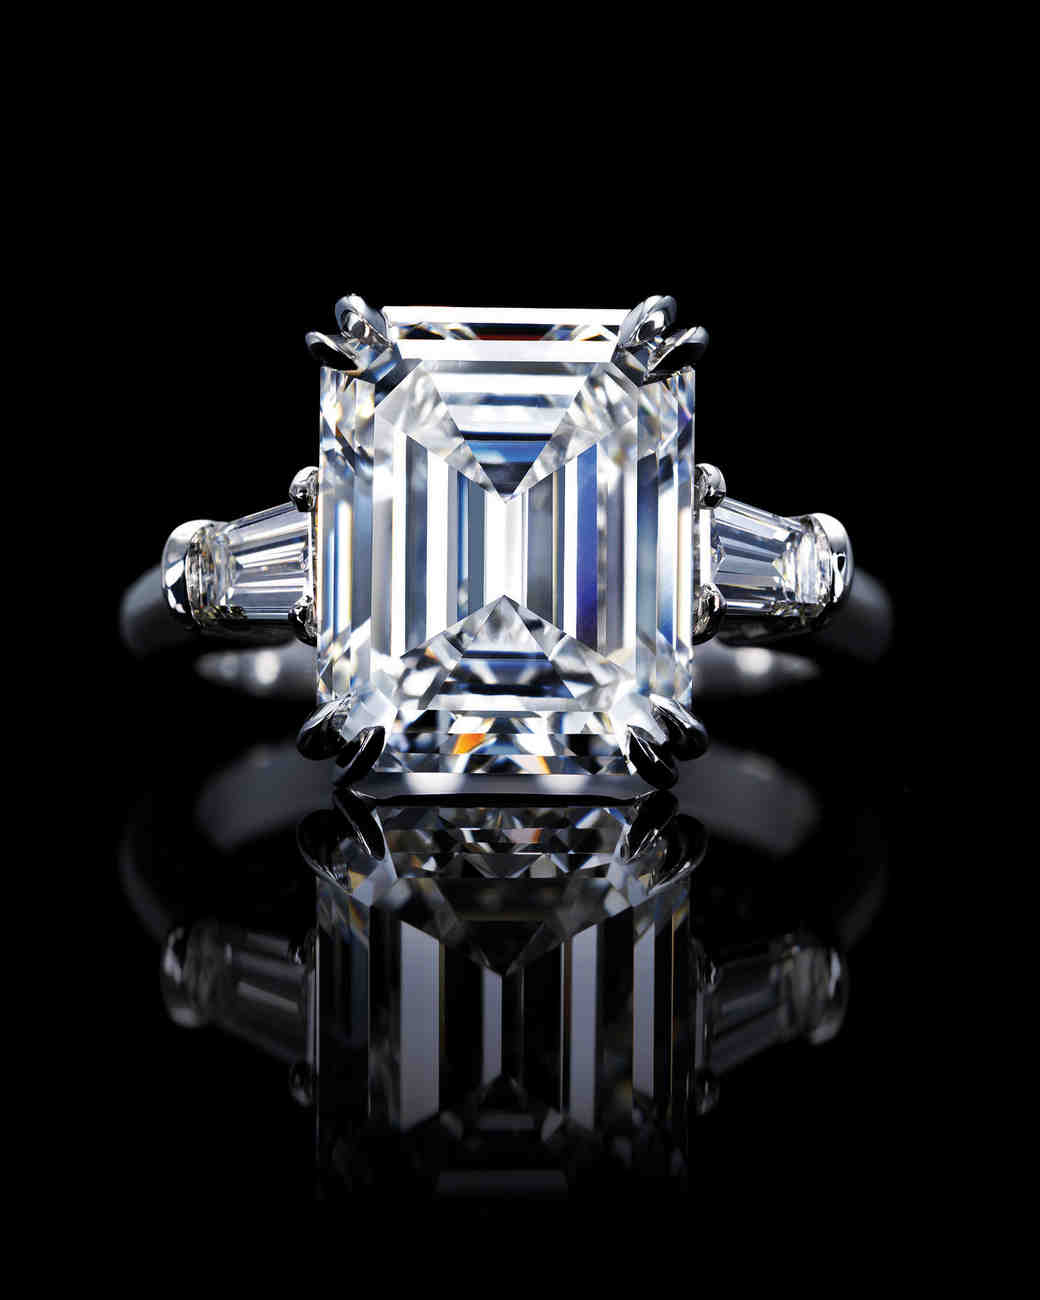 engagement rings all shapes and sizes harry winston wedding rings Diamond Engagement Rings in All Shapes and Sizes Martha Stewart Weddings